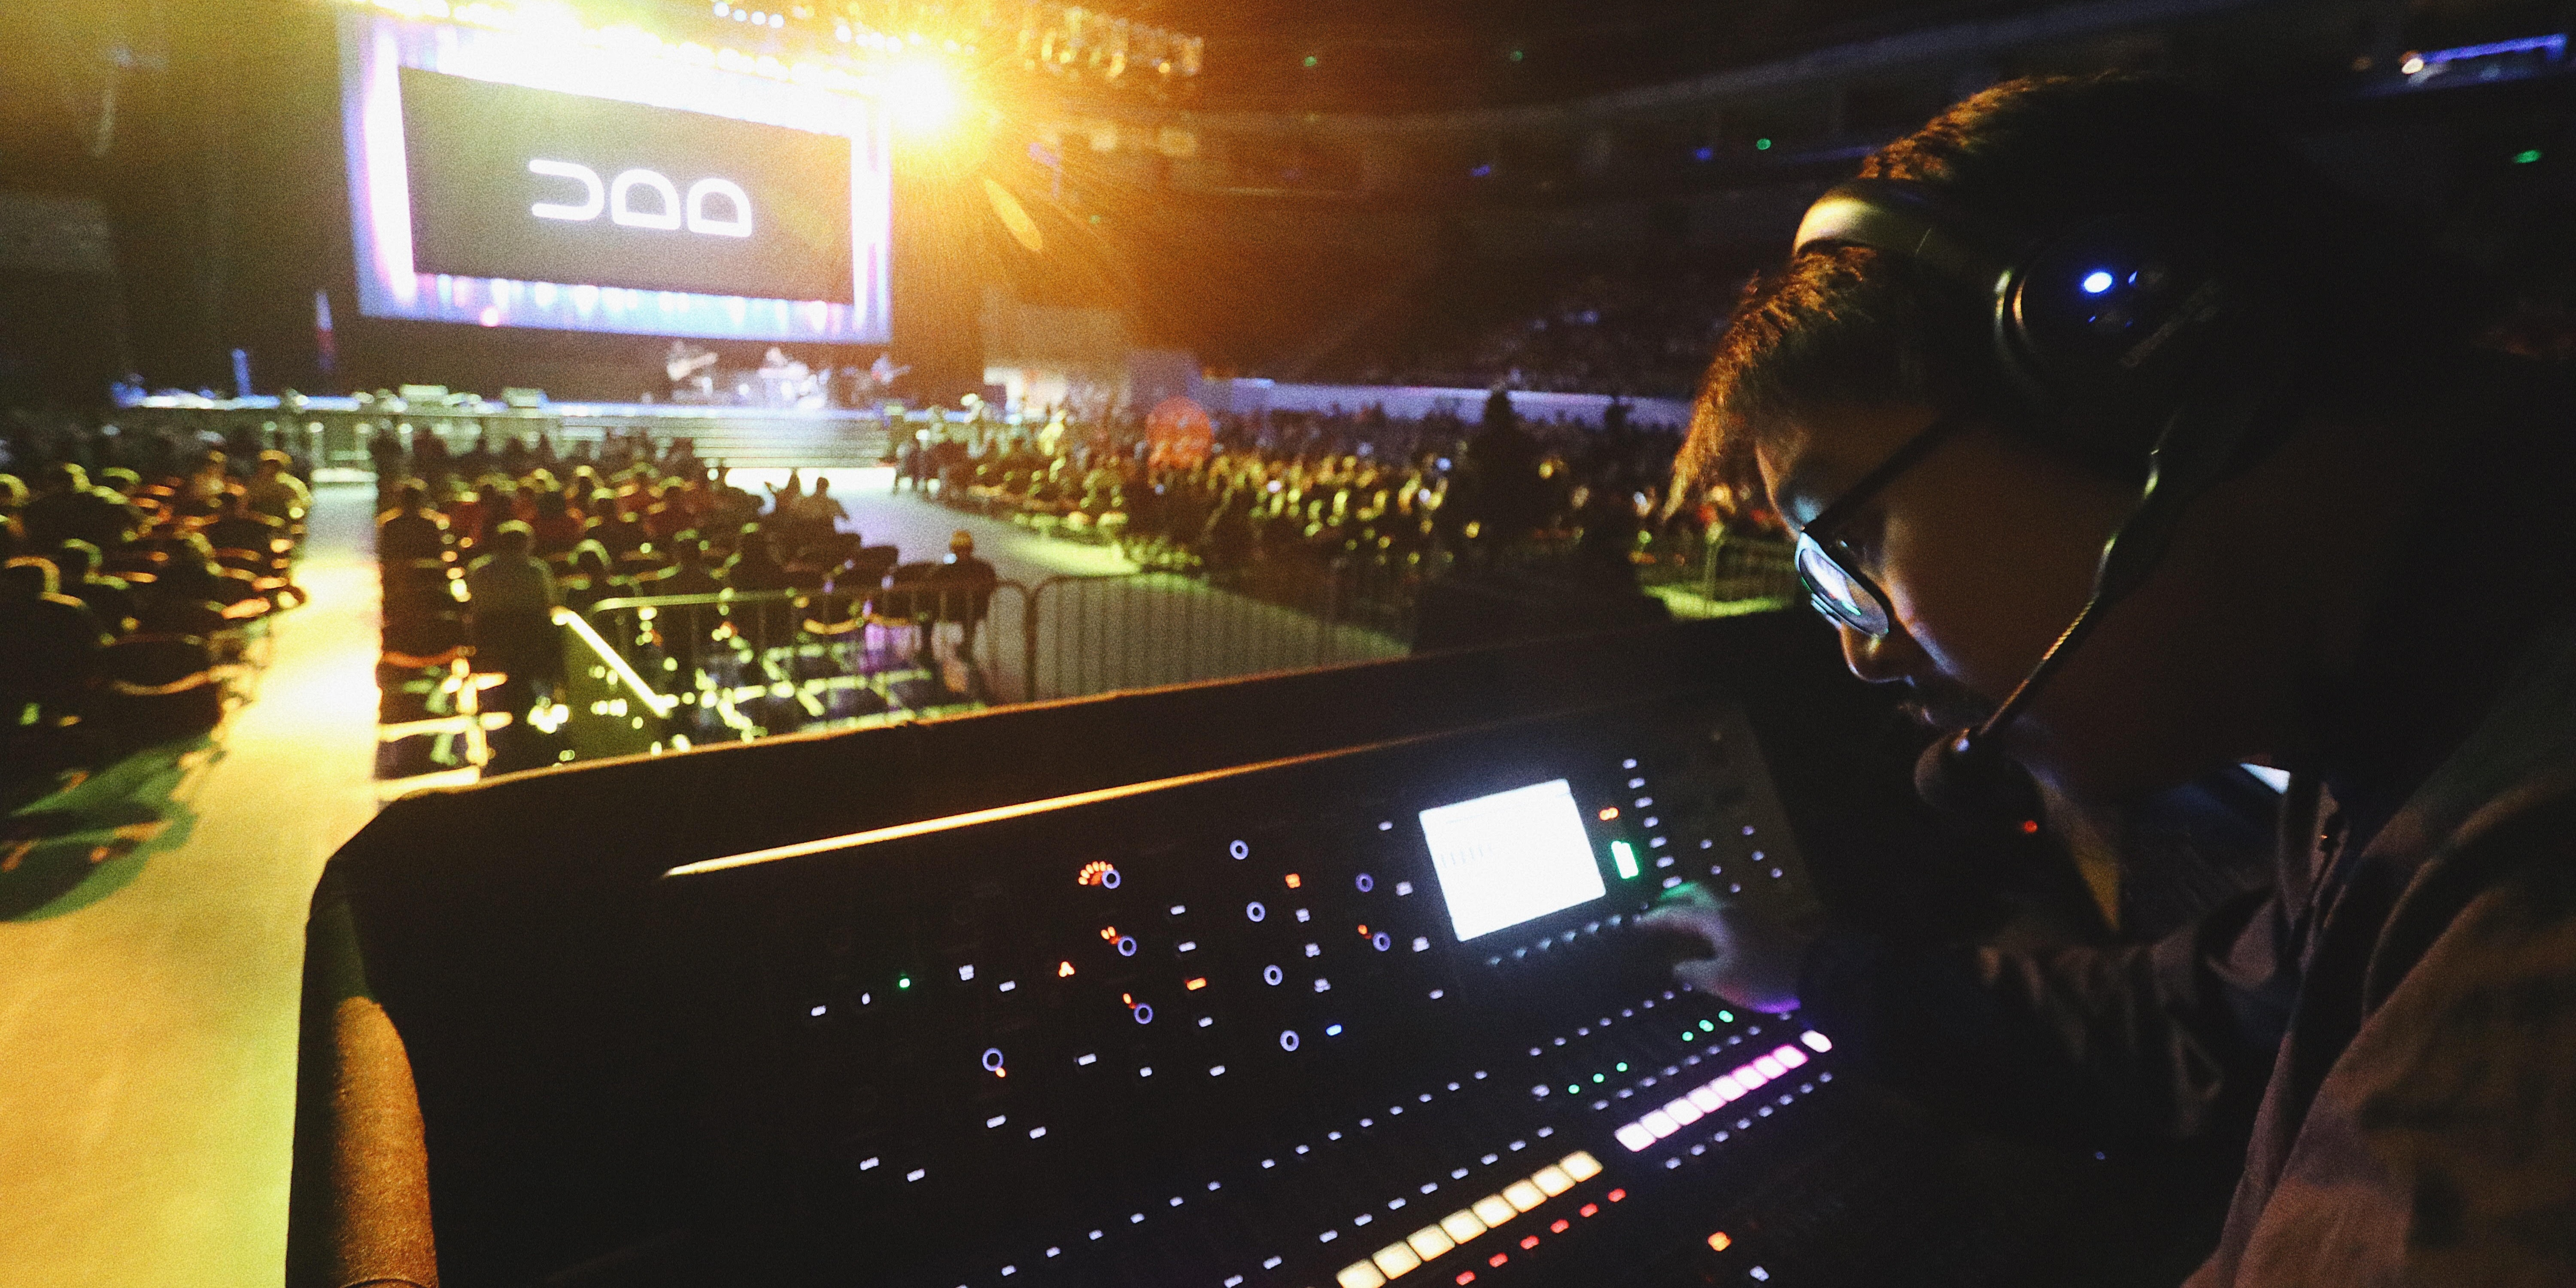 Sho Hikino talks the importance of live sound engineering, working with UDD, and how to get started